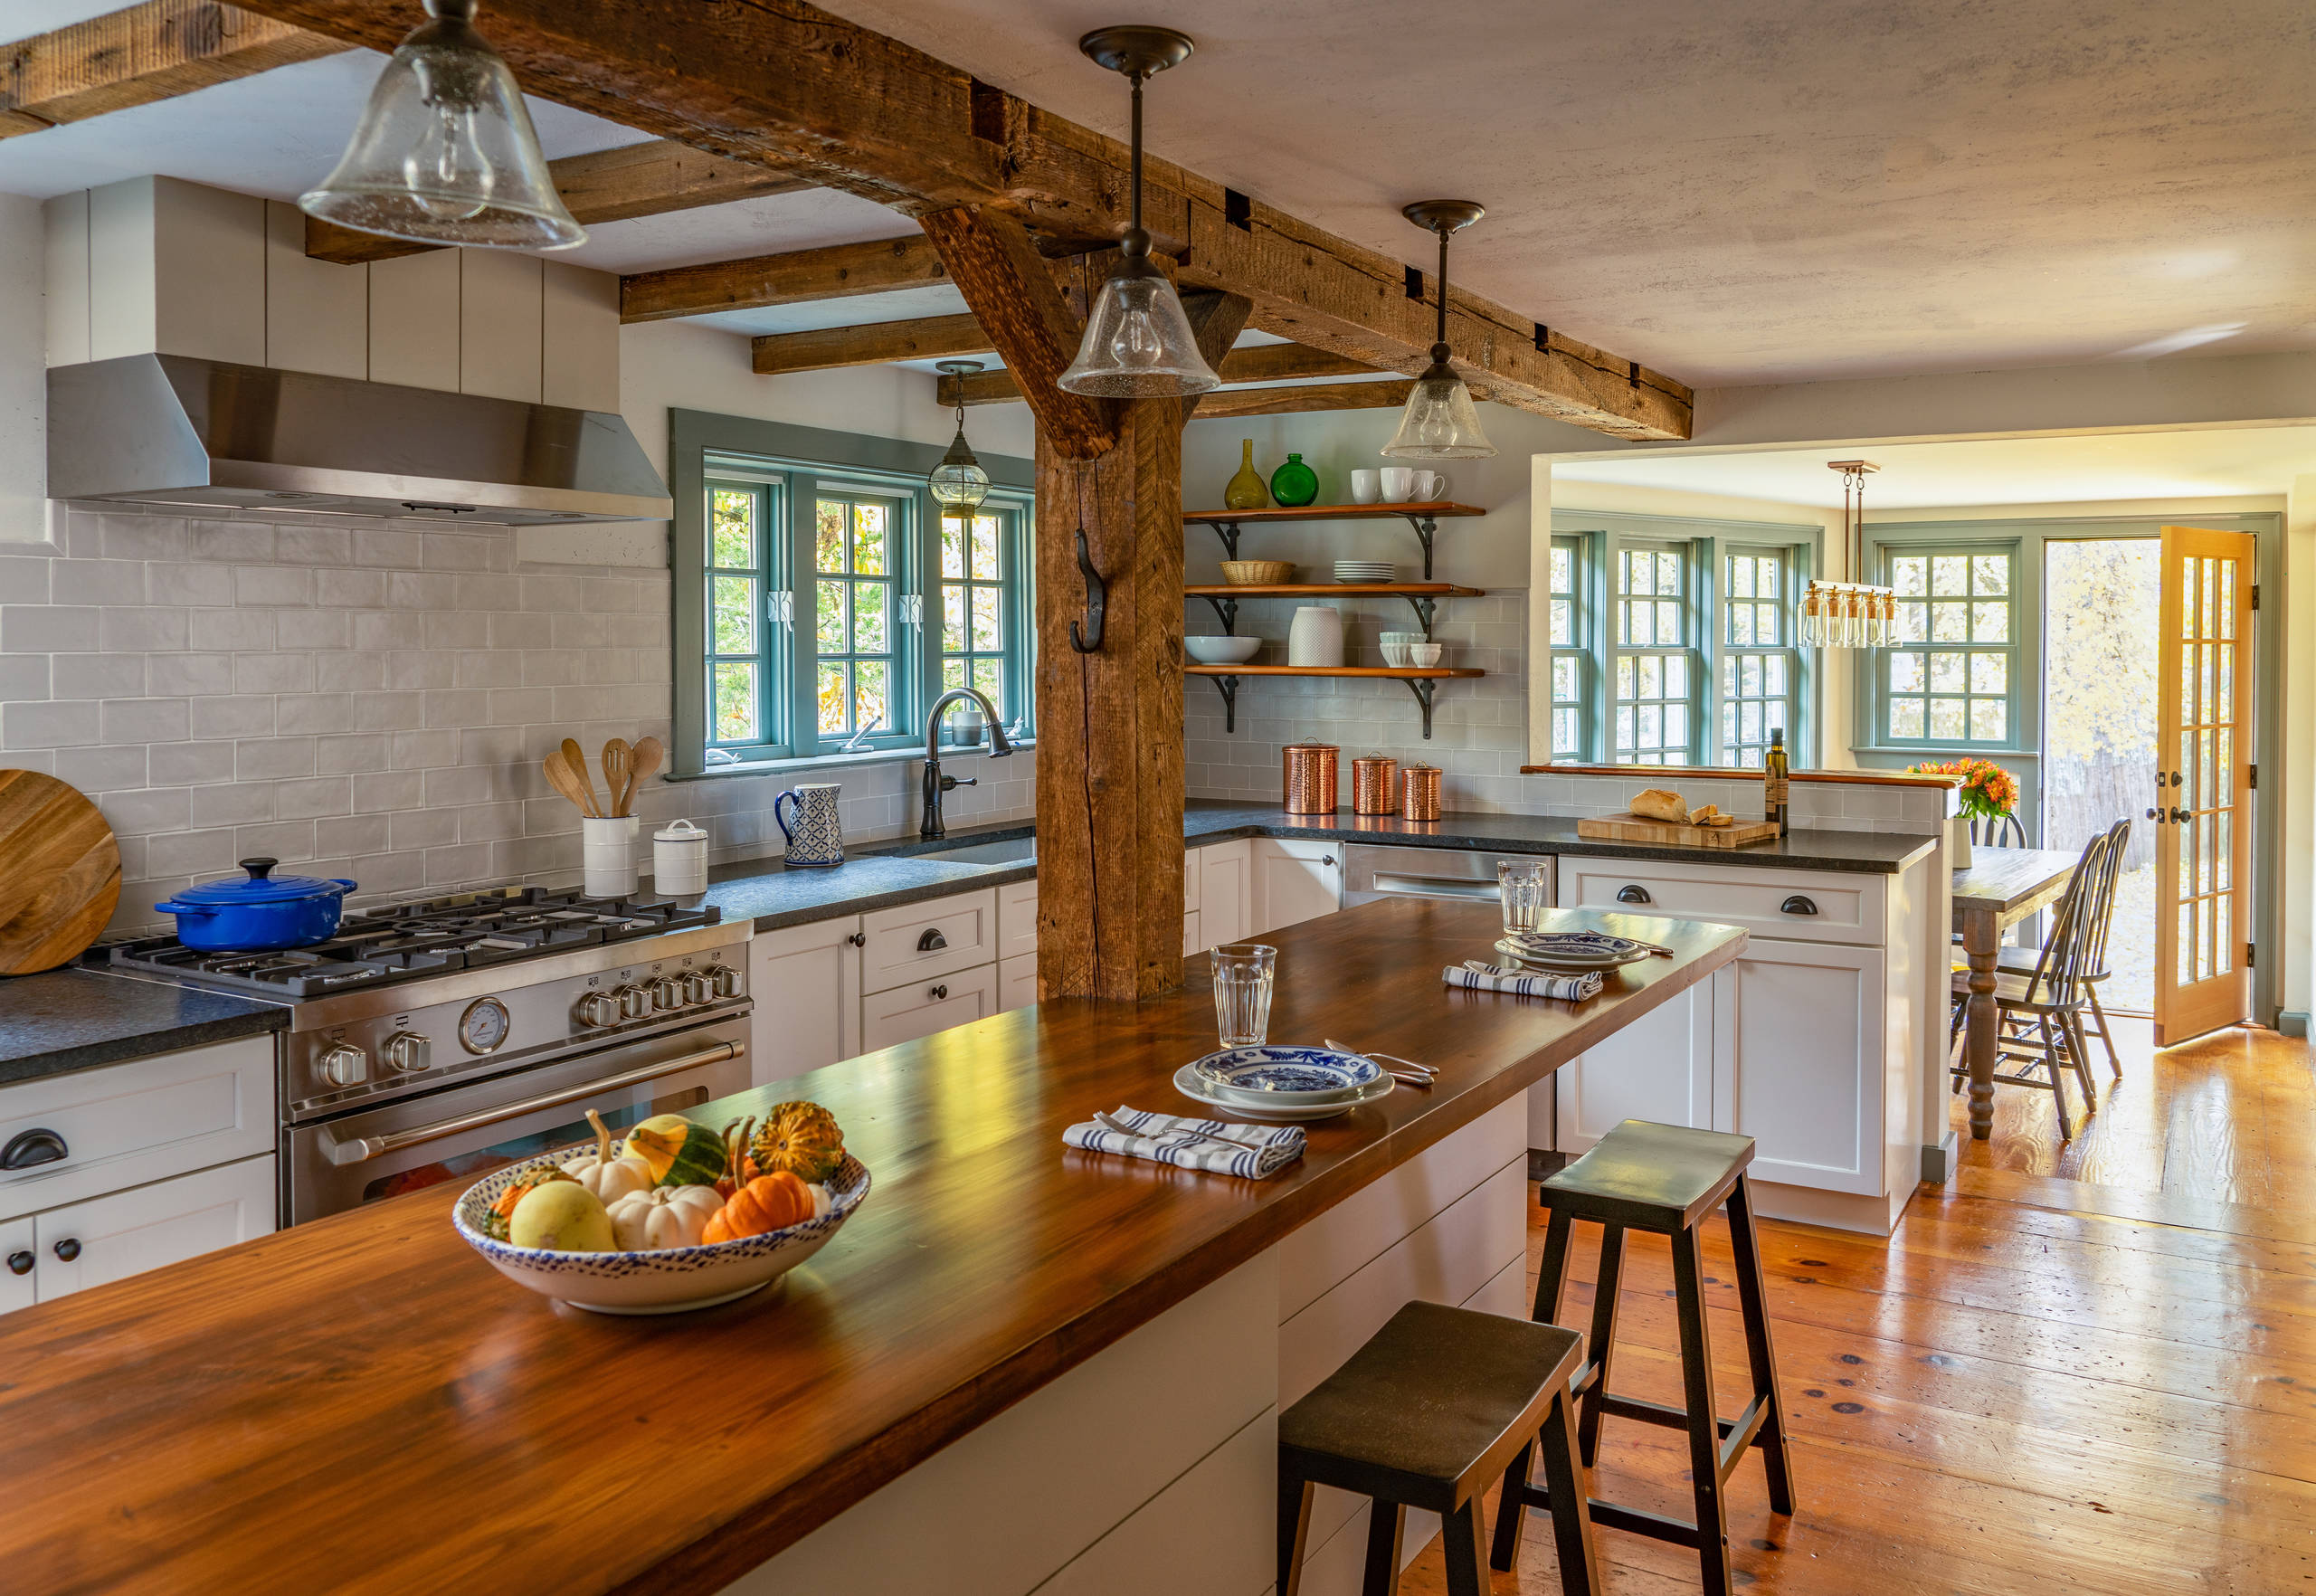 75 Beautiful Farmhouse Kitchen With Granite Countertops Pictures Ideas December 2020 Houzz